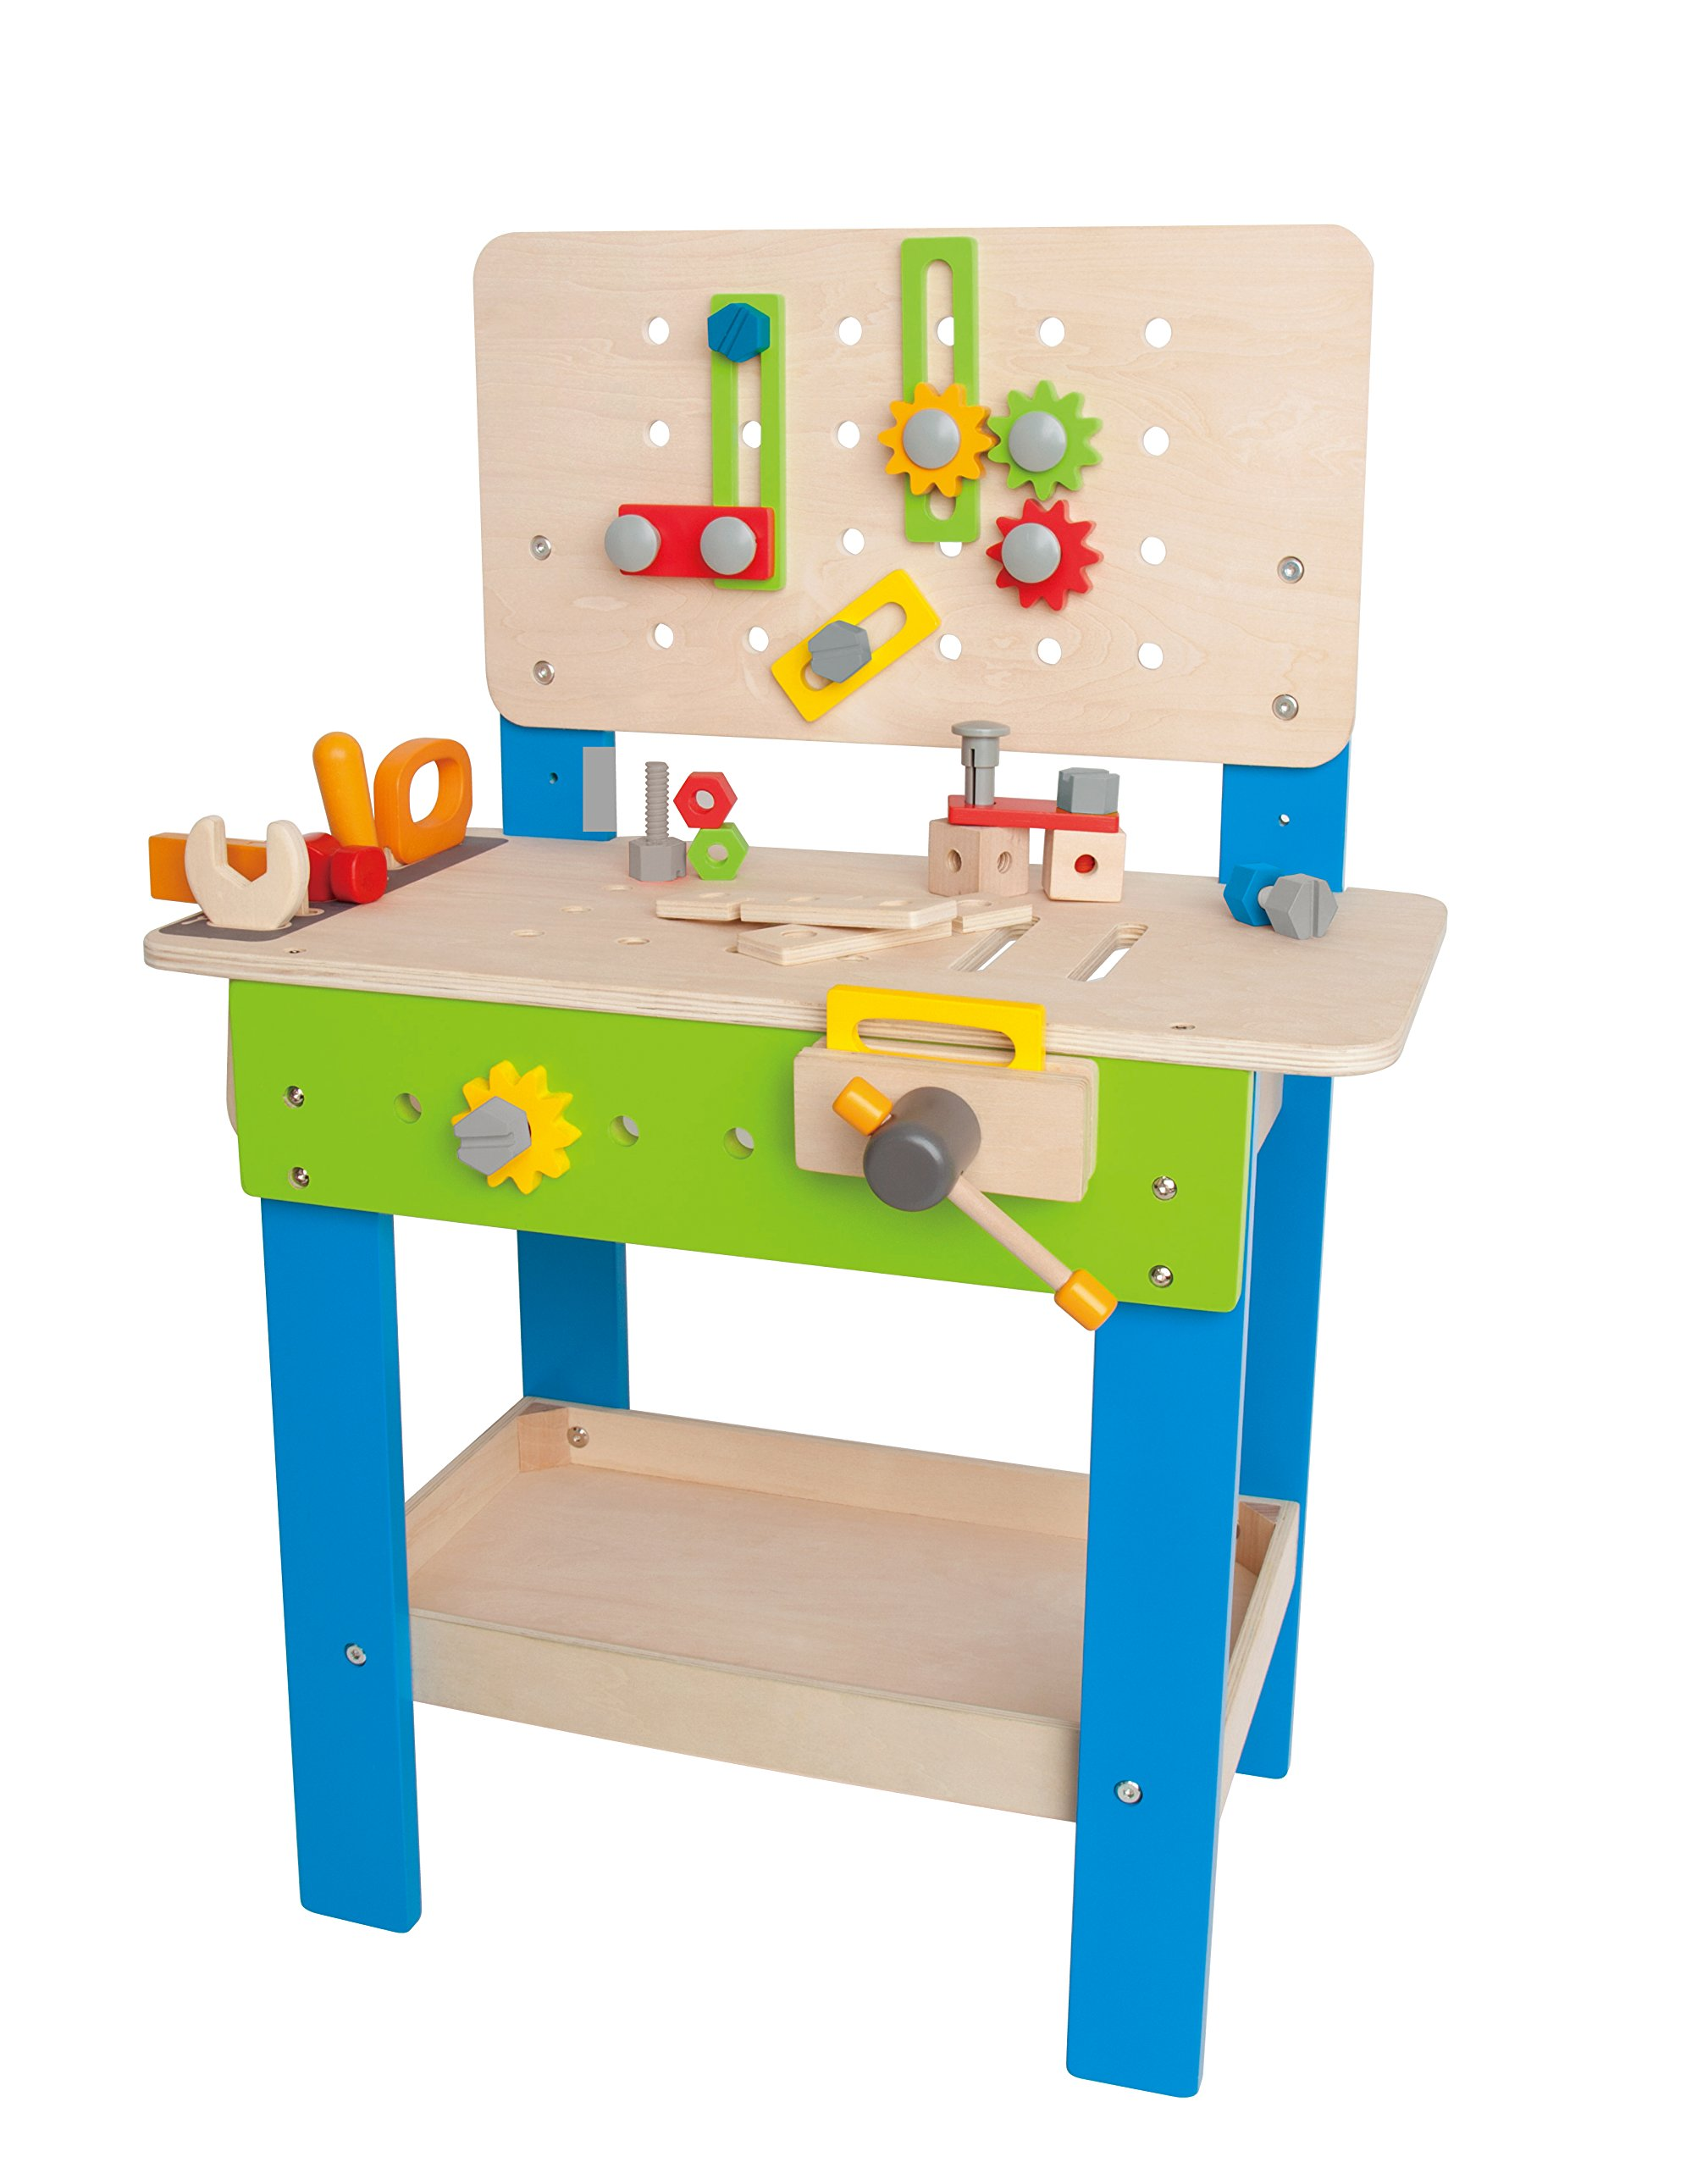 Hape Master Workbench by Award Winning Kid's Wooden Tool Bench Toy Pretend Play Creative Building Set, Height Adjustable 32 Piece Workshop for Toddlers